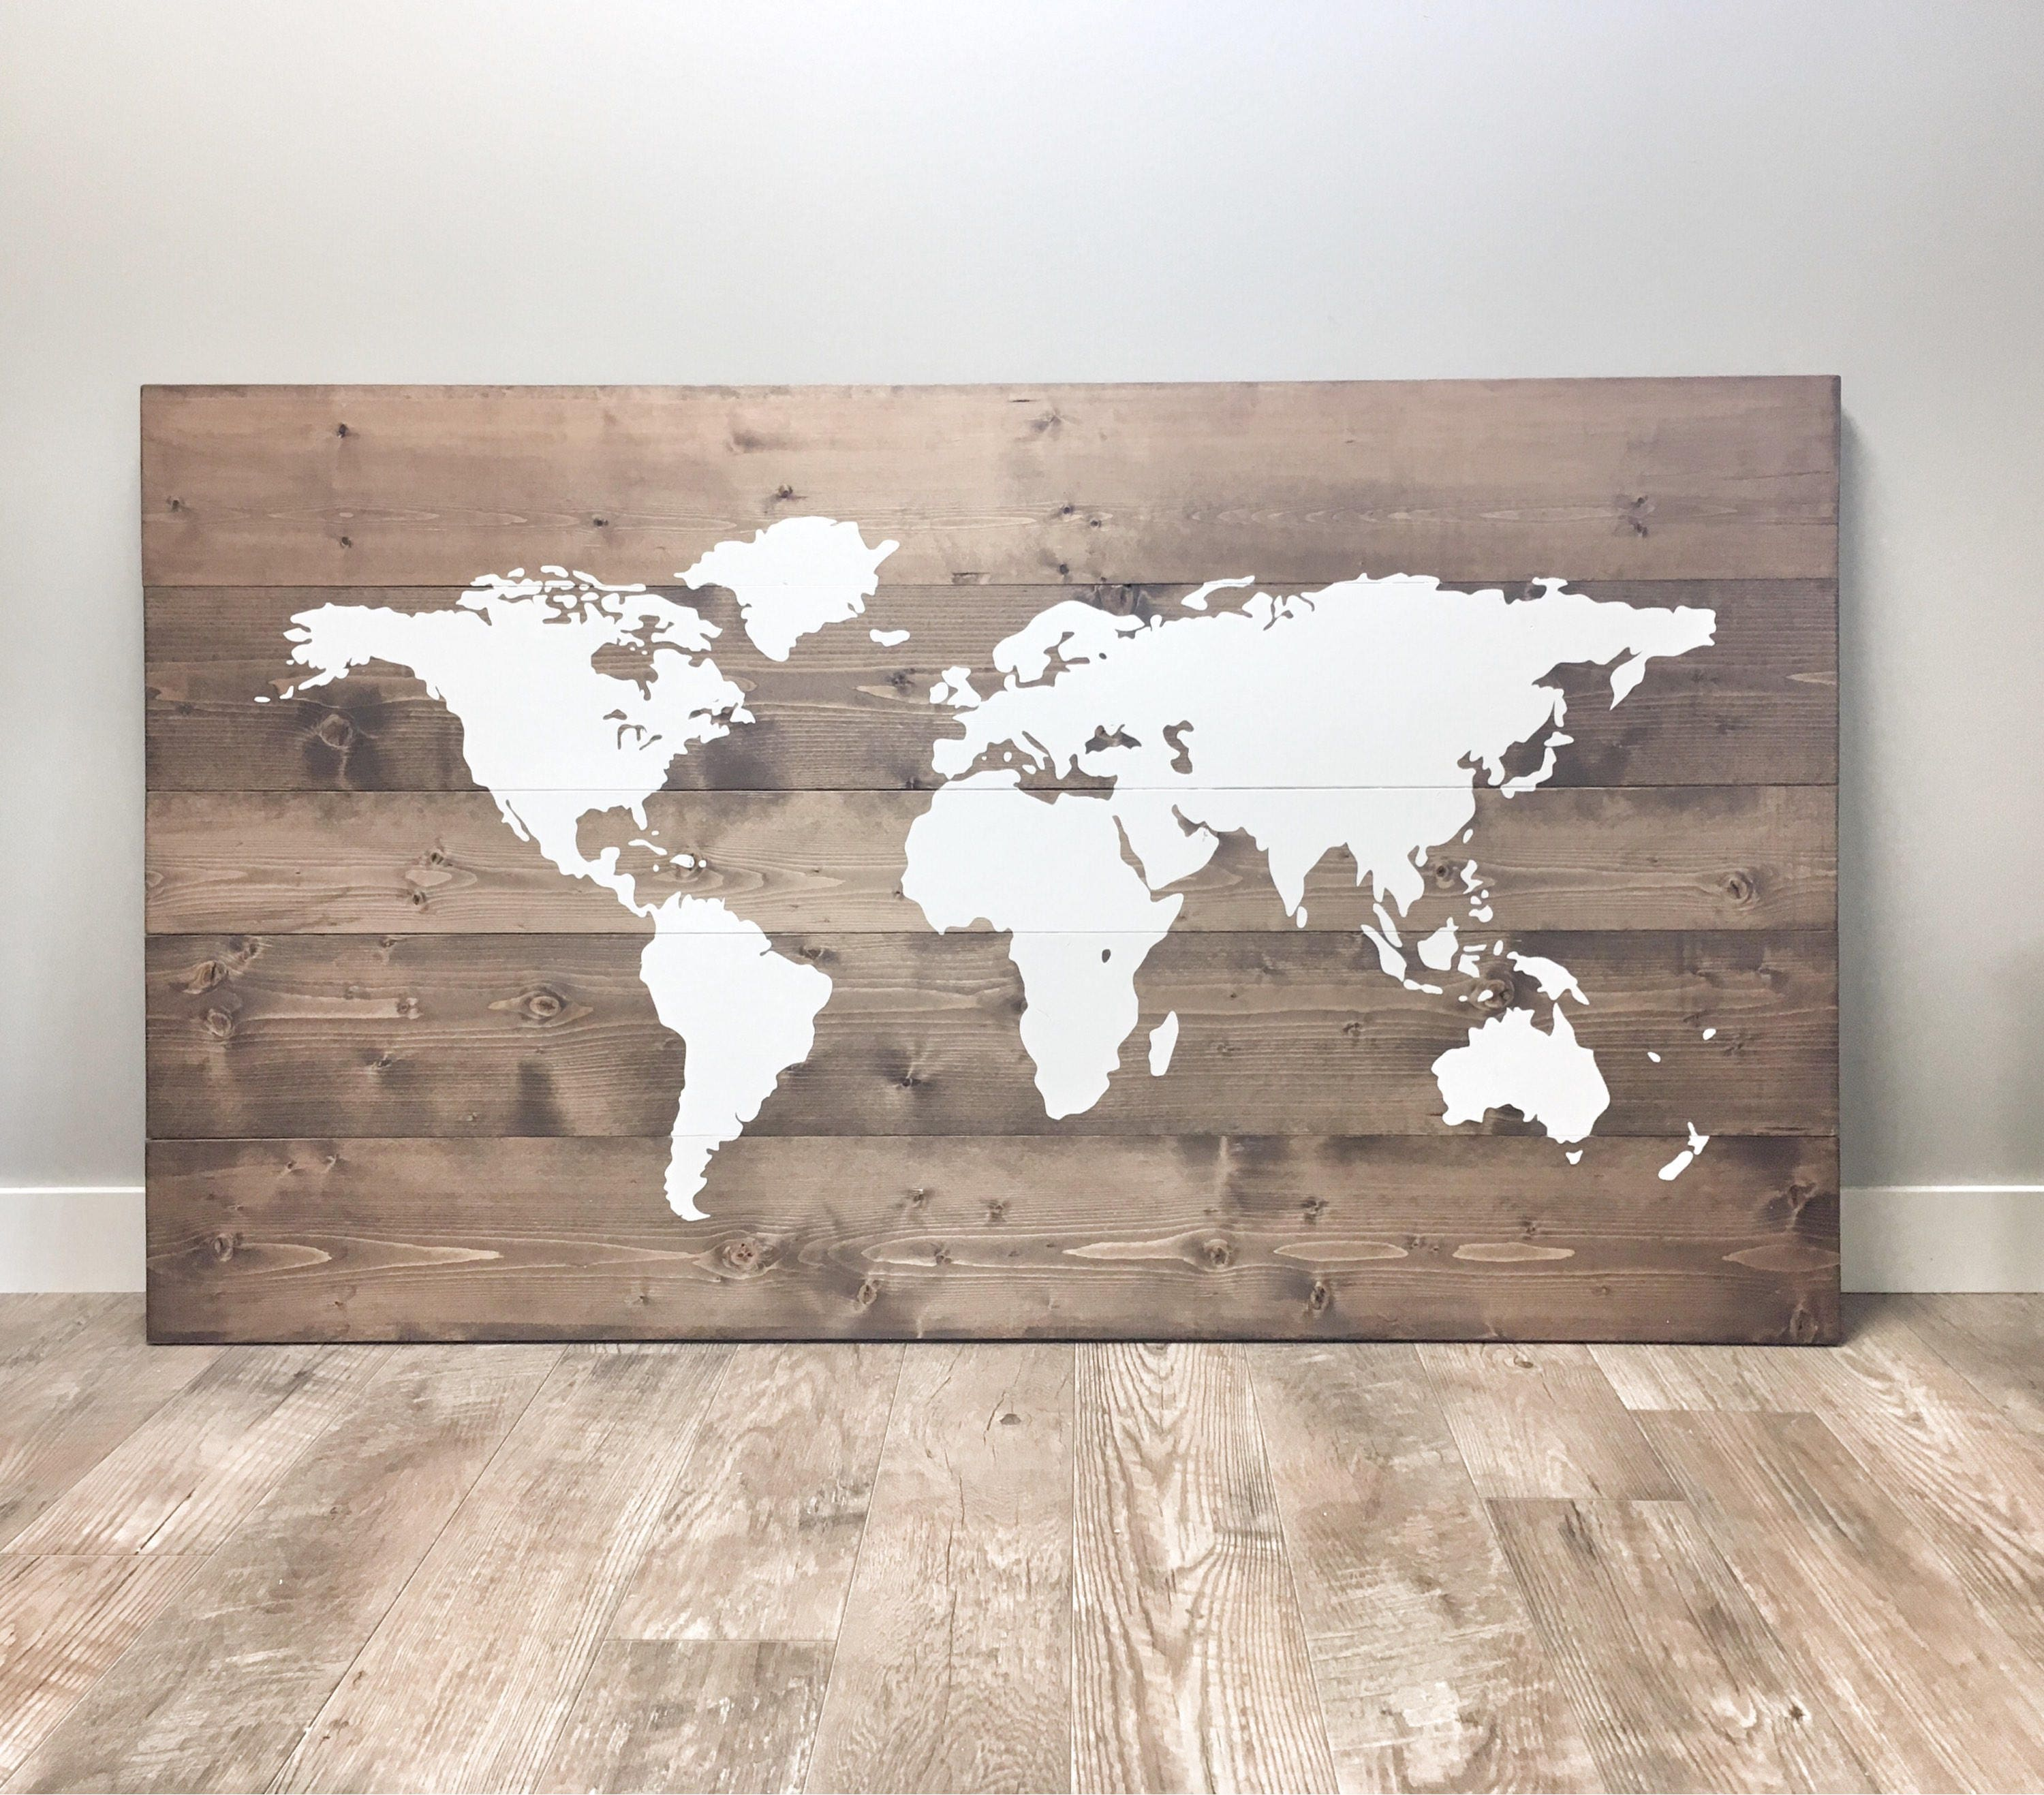 huge rustic wood world map rustic decor farmhouse decor. Black Bedroom Furniture Sets. Home Design Ideas